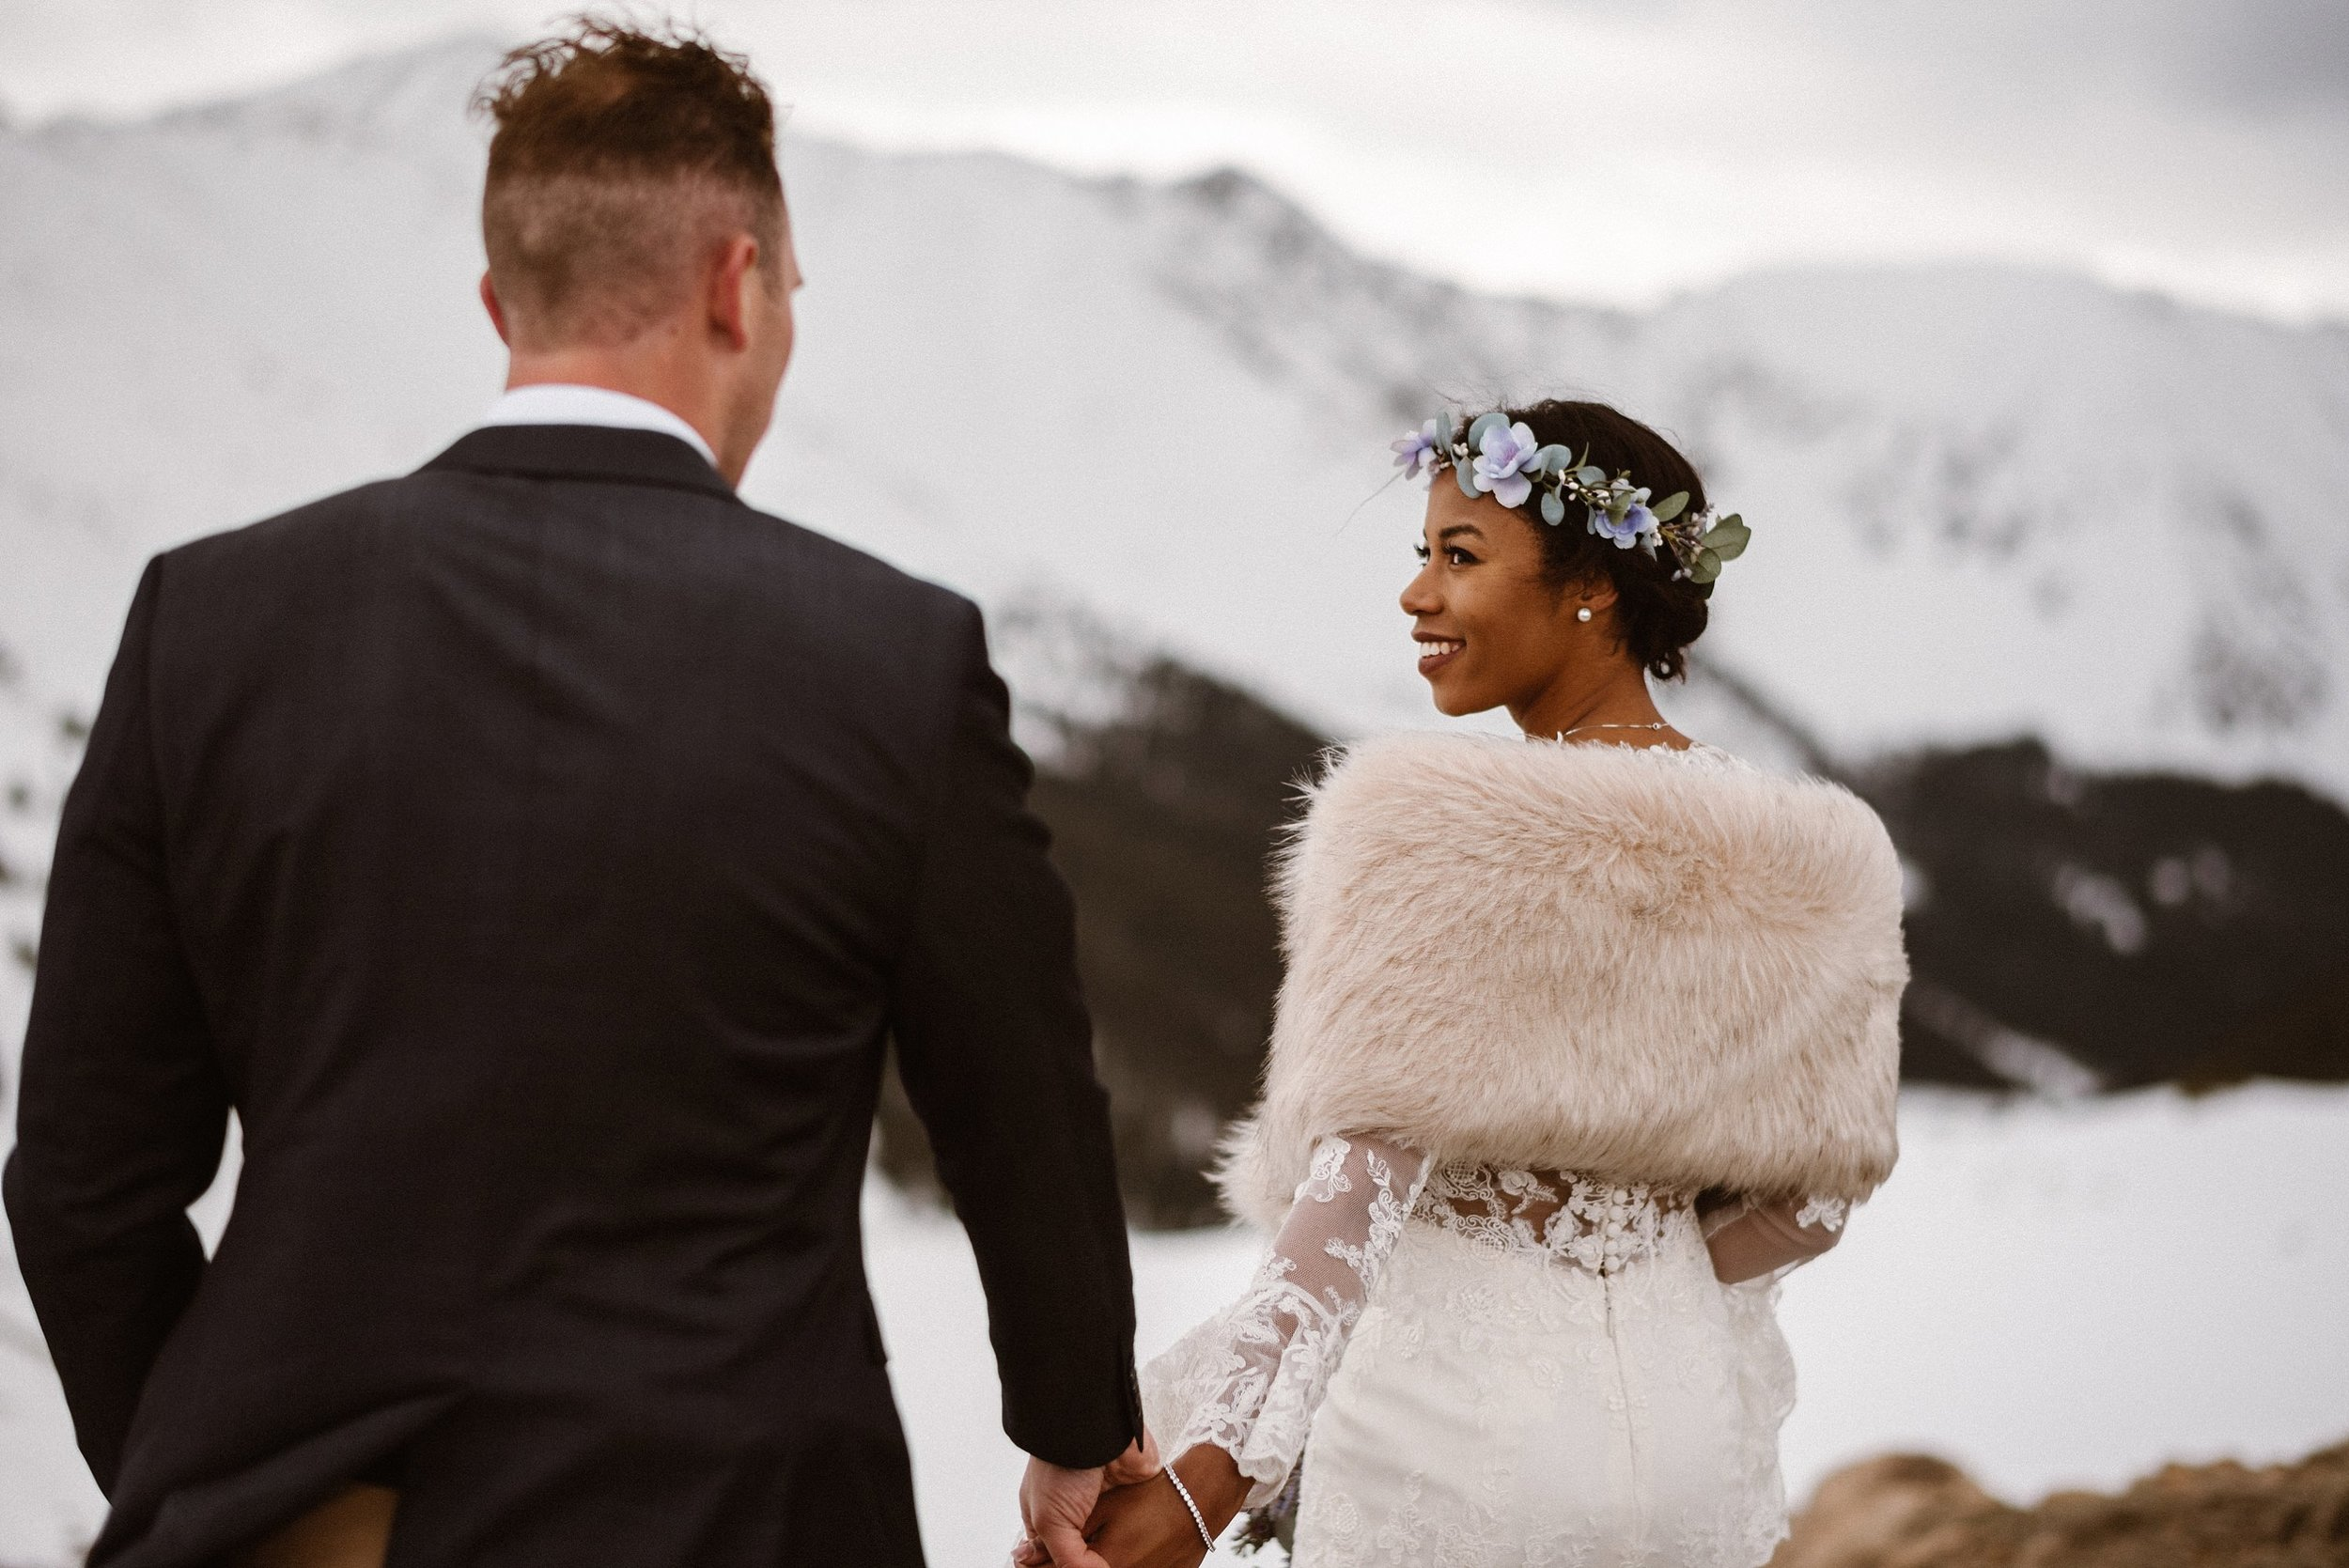 Trekking higher into the Rocky Mountains as the sun shone down upon them like a natural spotlight. This vintage styled intimate elopement captured by traveling wedding photographer Maddie Mae.